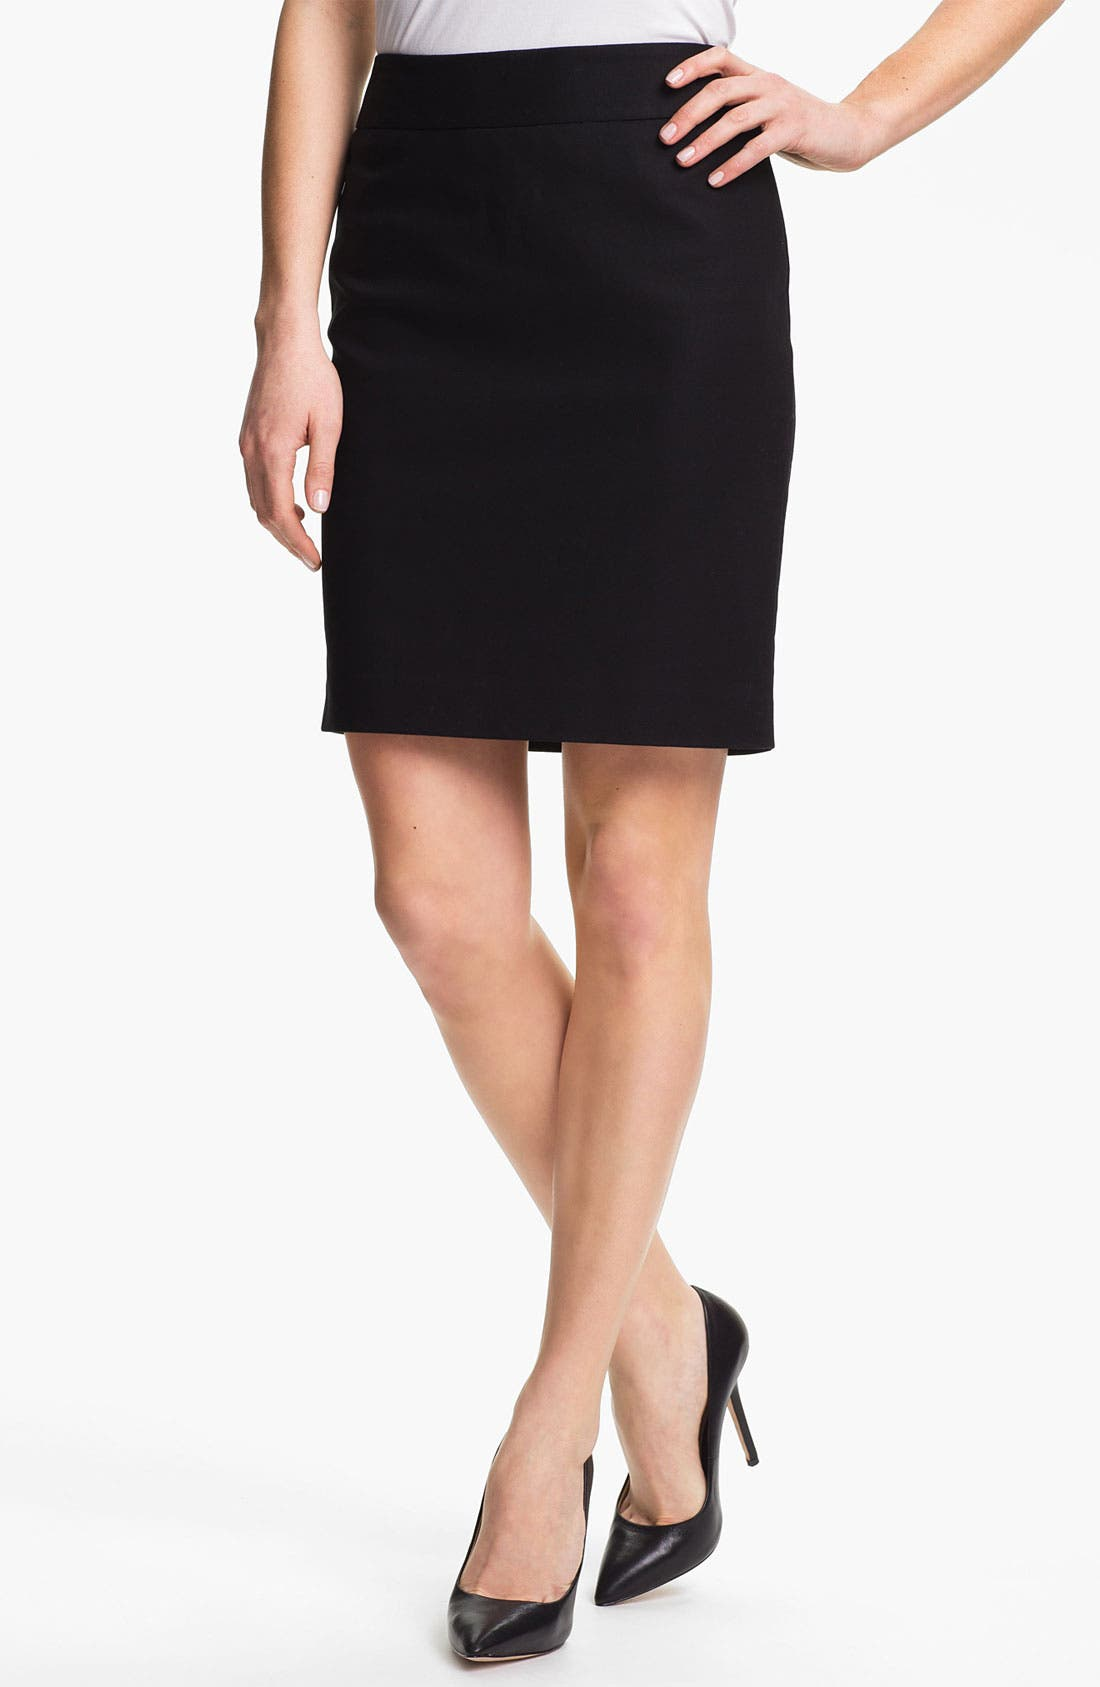 Alternate Image 1 Selected - Vince Camuto Stretch Cotton Skirt